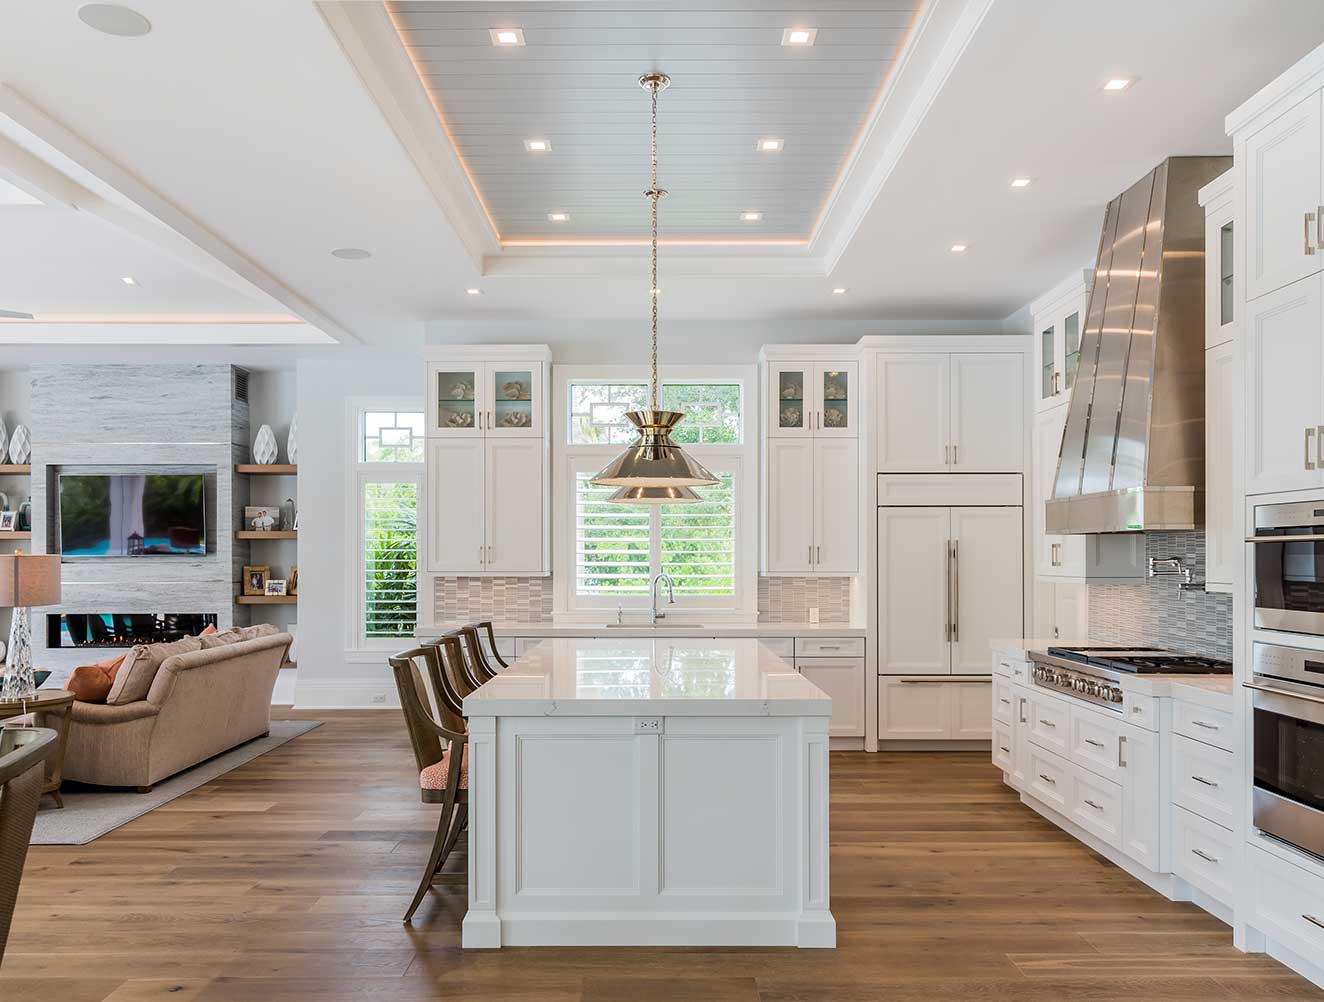 Luxury kitchen of Fort Charles Estate in Naples Florida, single family home designed by Kukk Architecture & Design Naples Architecture Firm